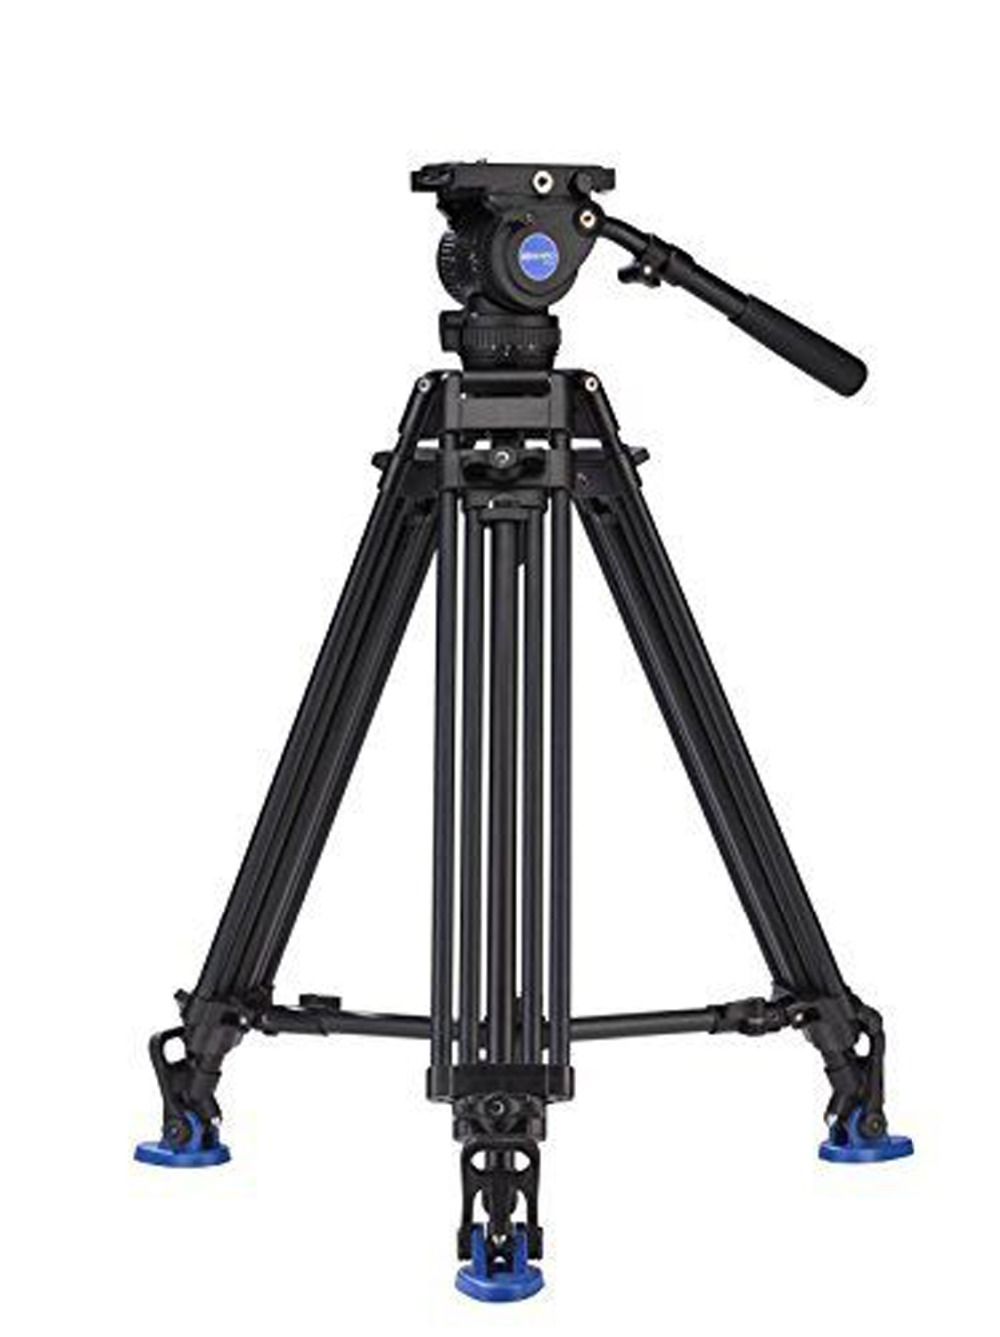 New Film Tripod Video Camera Stabilizer benro bv8 Professional Support For Television Camcorder Aluminum High Quality benro aluminum tripod 3 8 super strong impact resistance horizontal axis camera tripod multifunctional alloy tripod ga169t